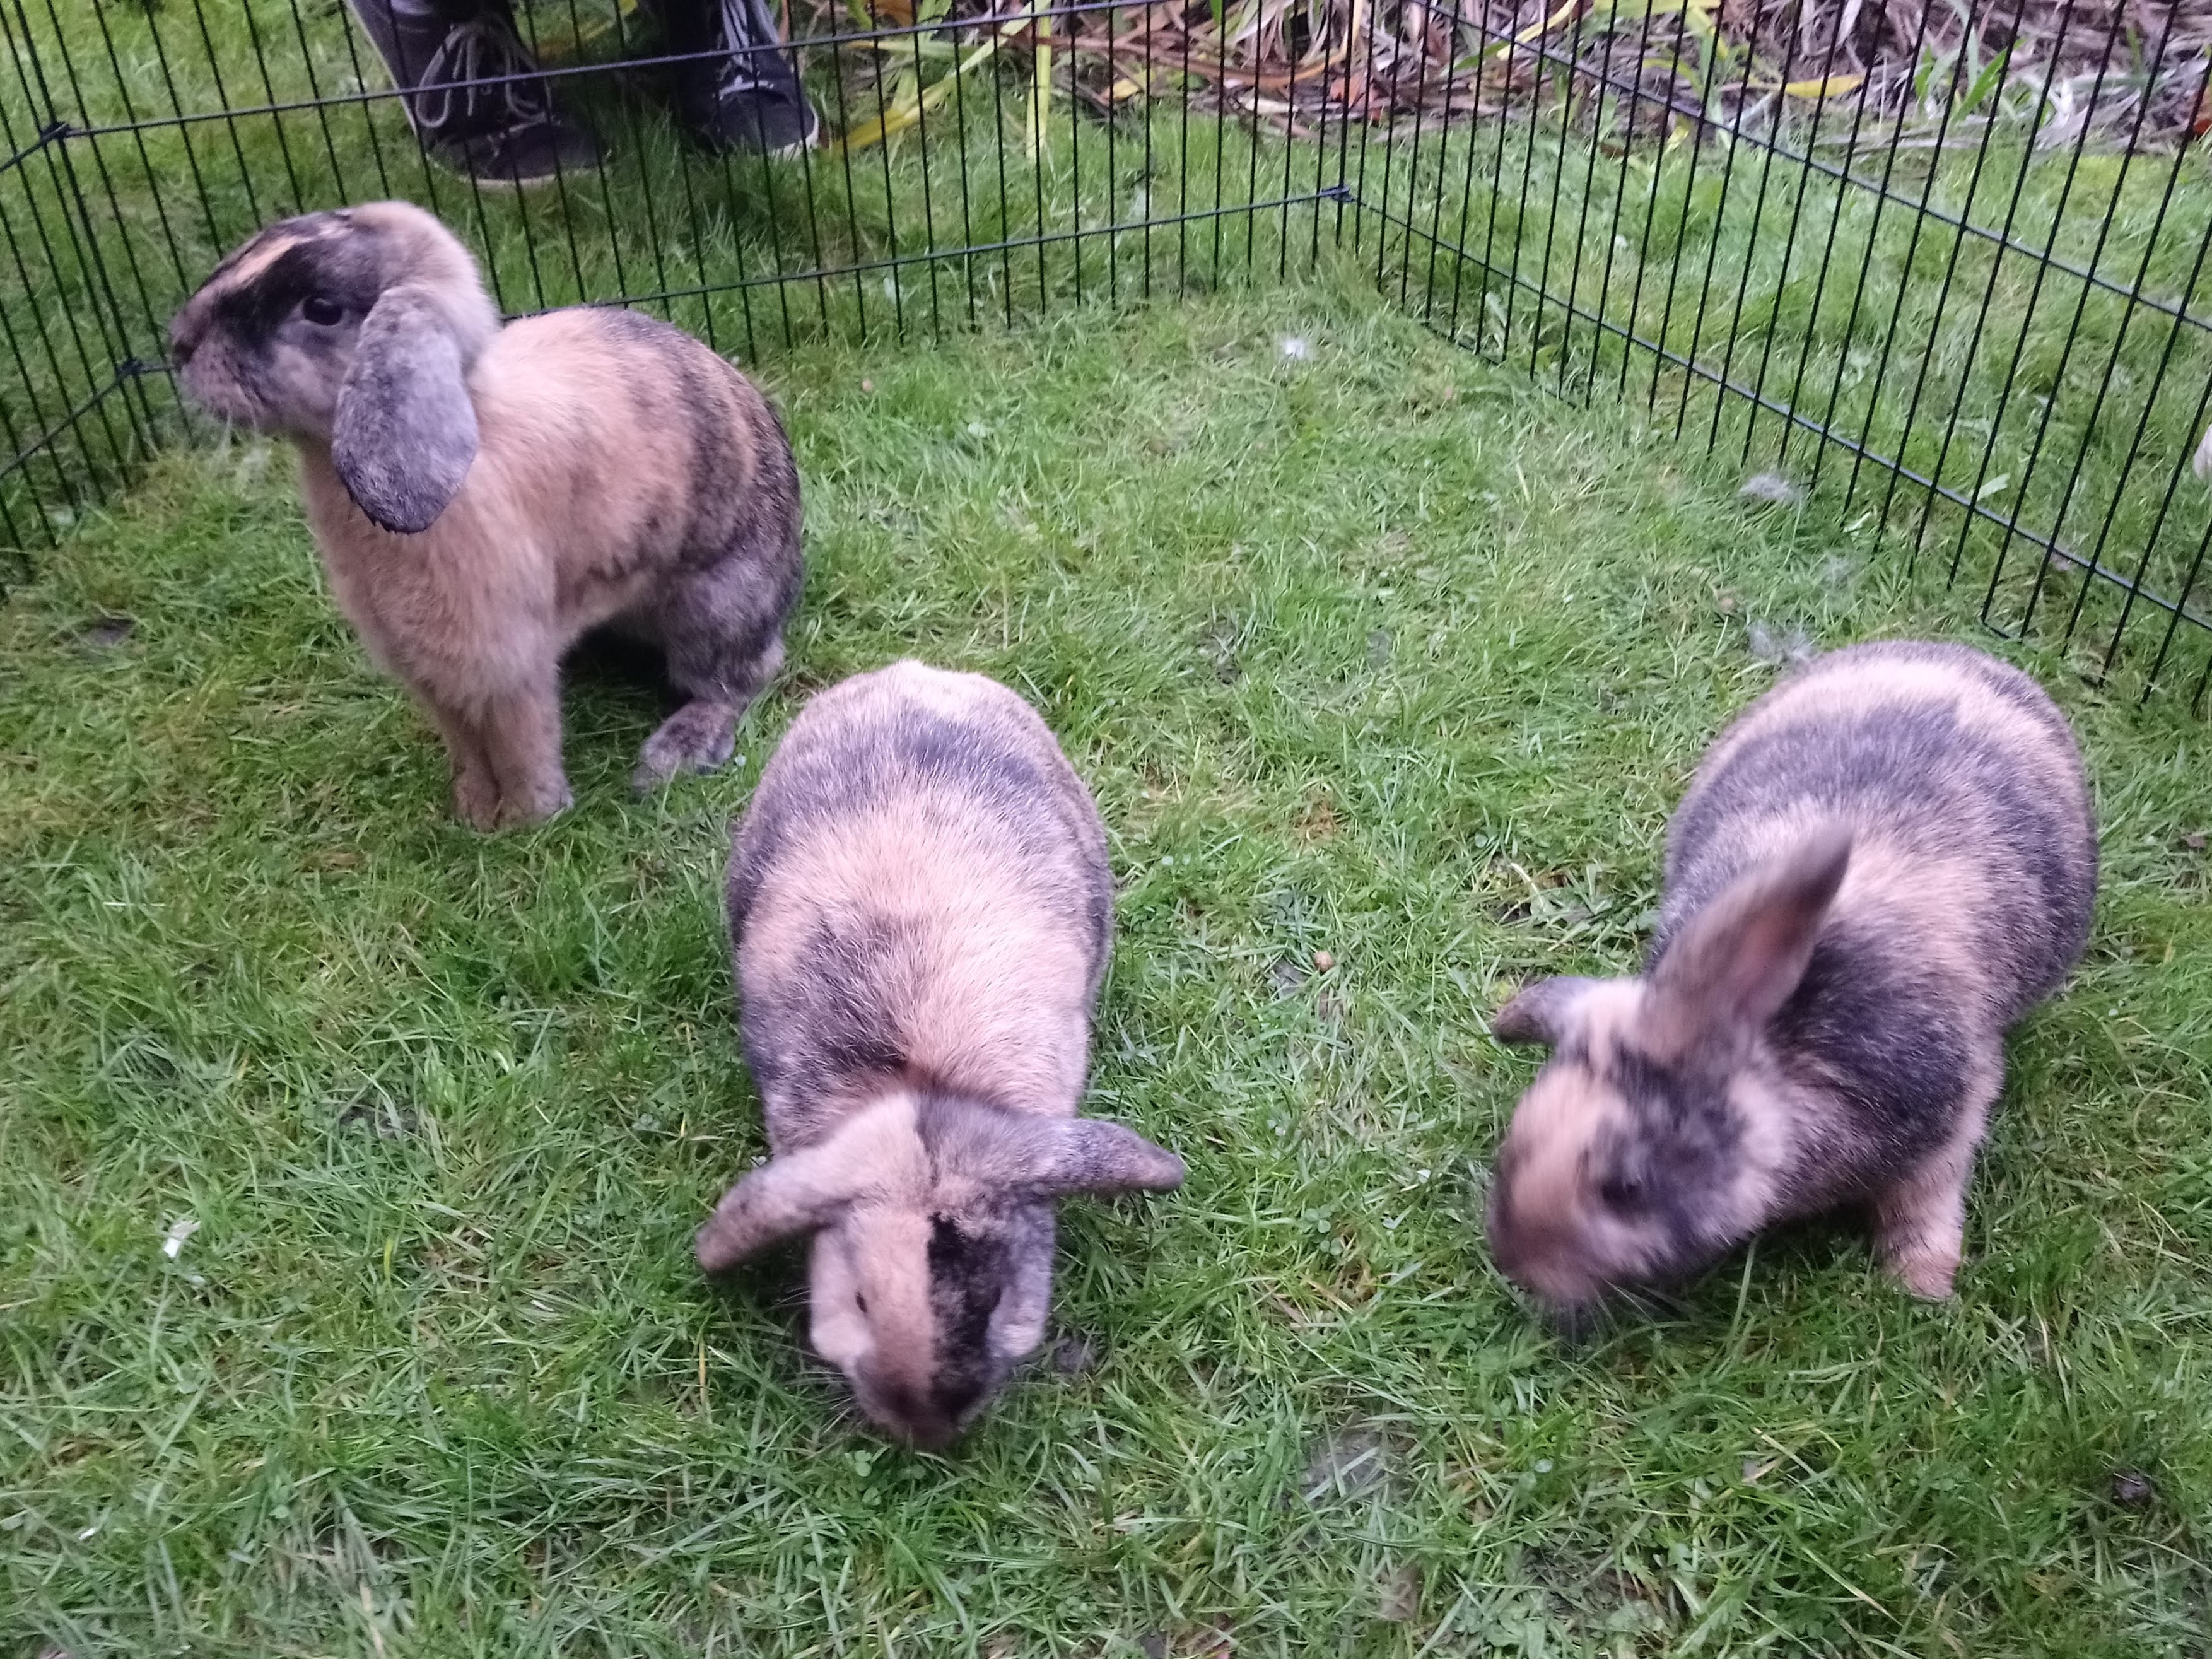 Three lop-eared black and brown rabbits grazing grass.